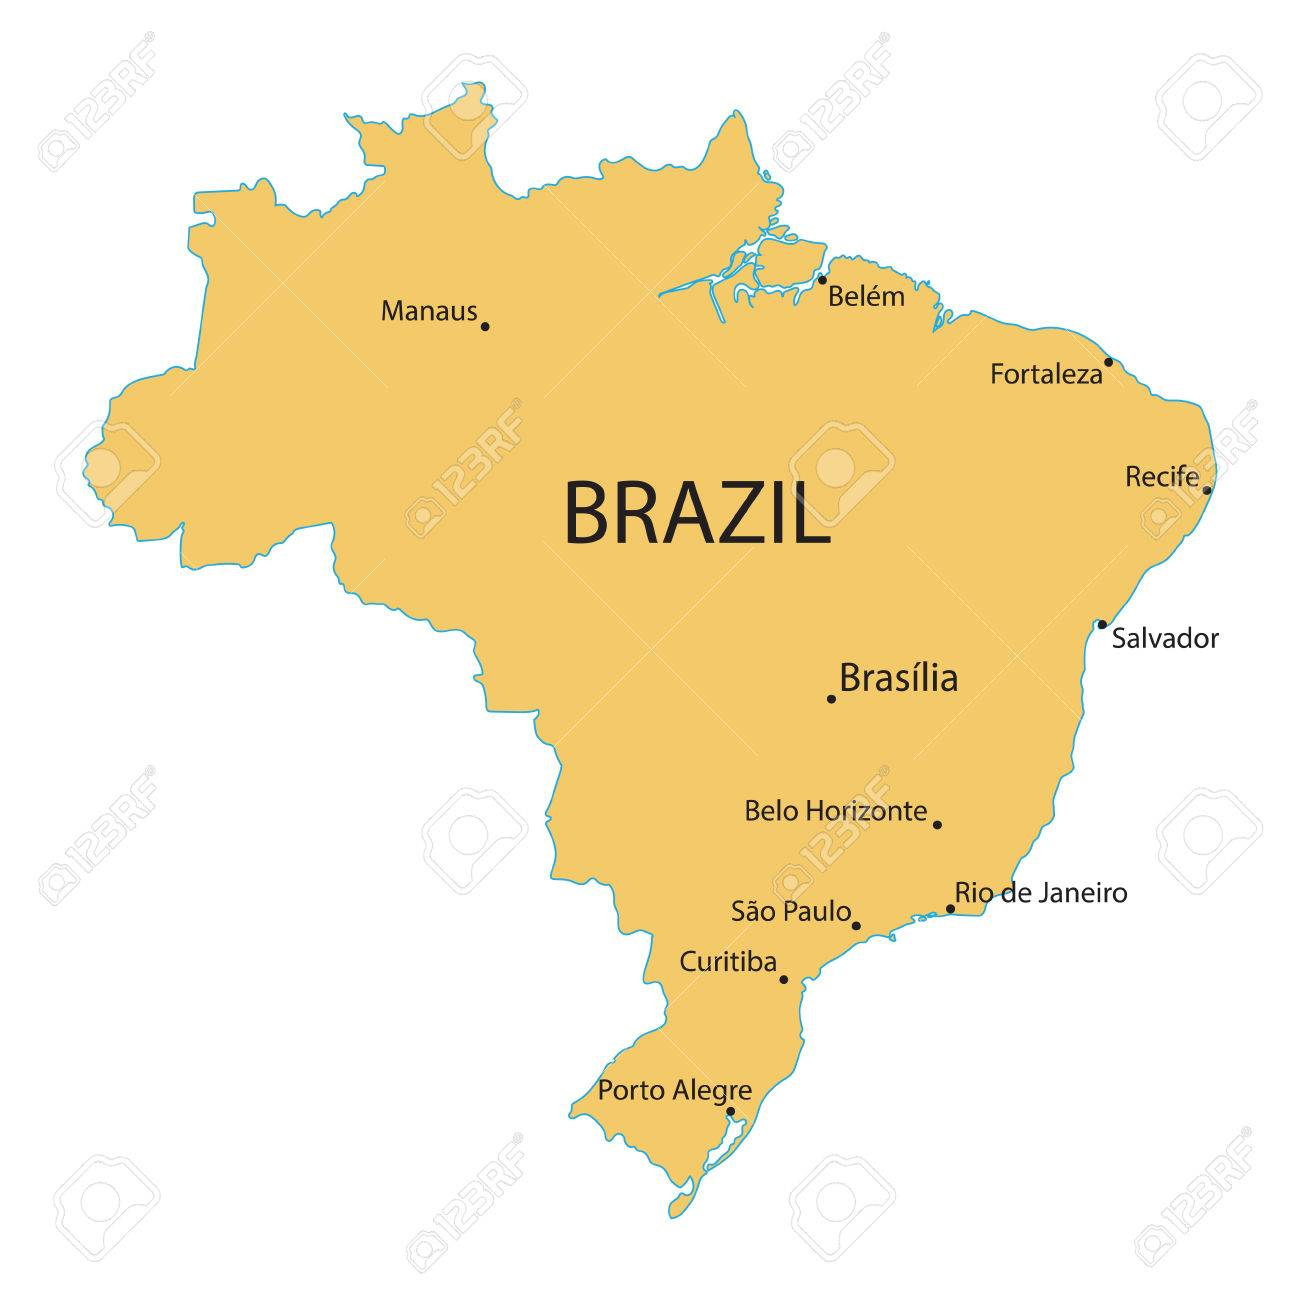 Map Of Brazil With Indication Of Largest Cities Royalty Free ...